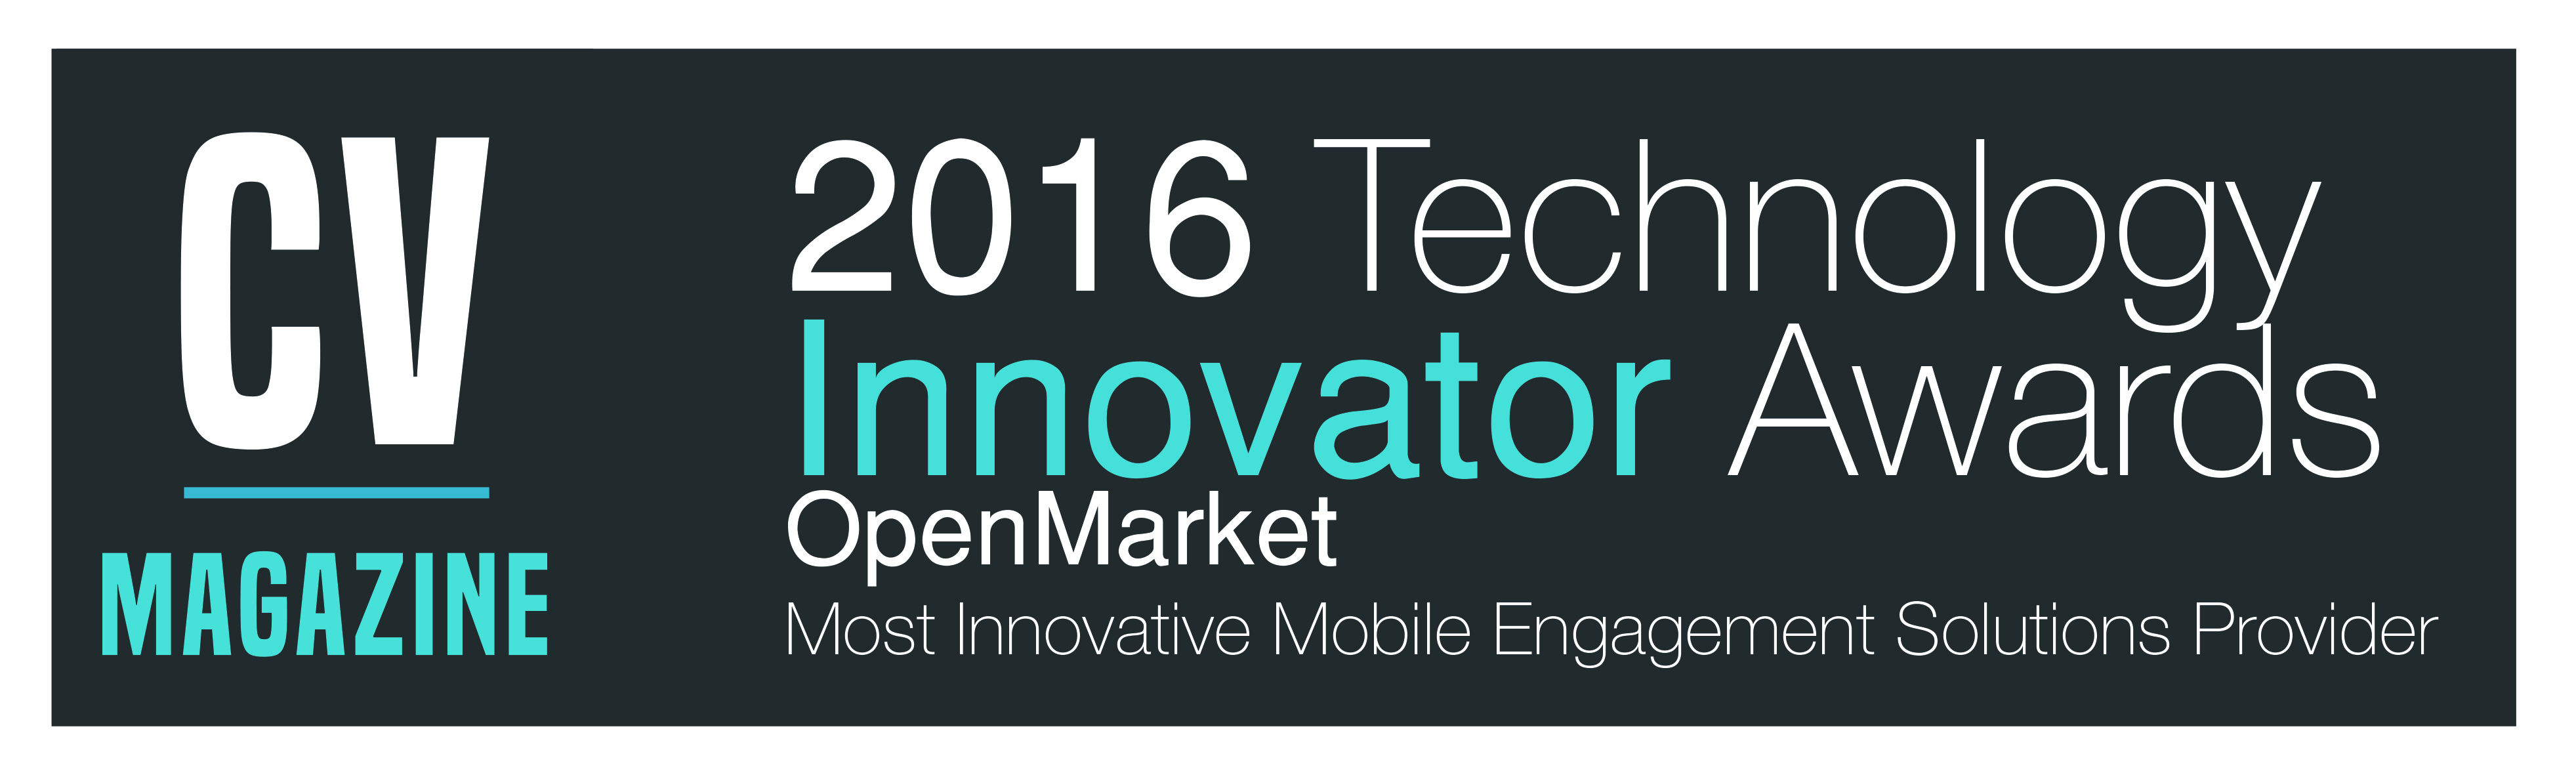 Open Market ,Inc.-Tech Innovator Awards (TI16121) Winners Logo